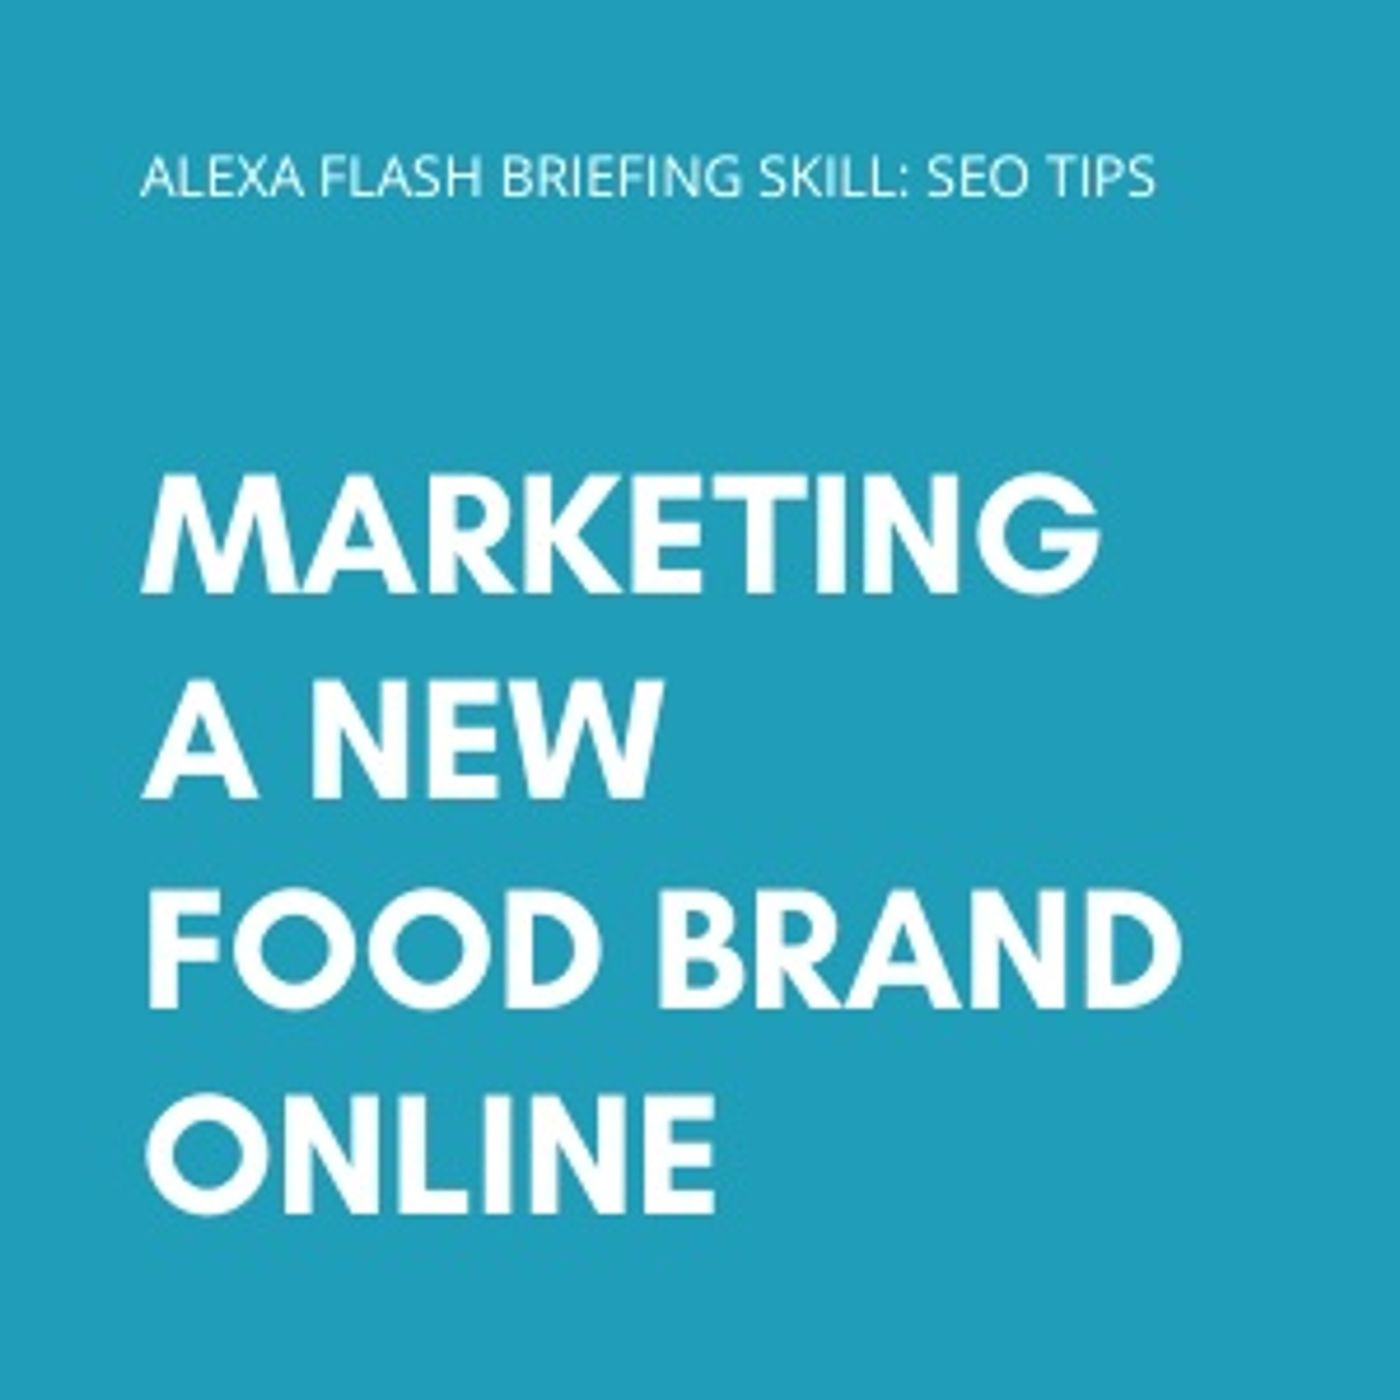 Marketing a new food brand online